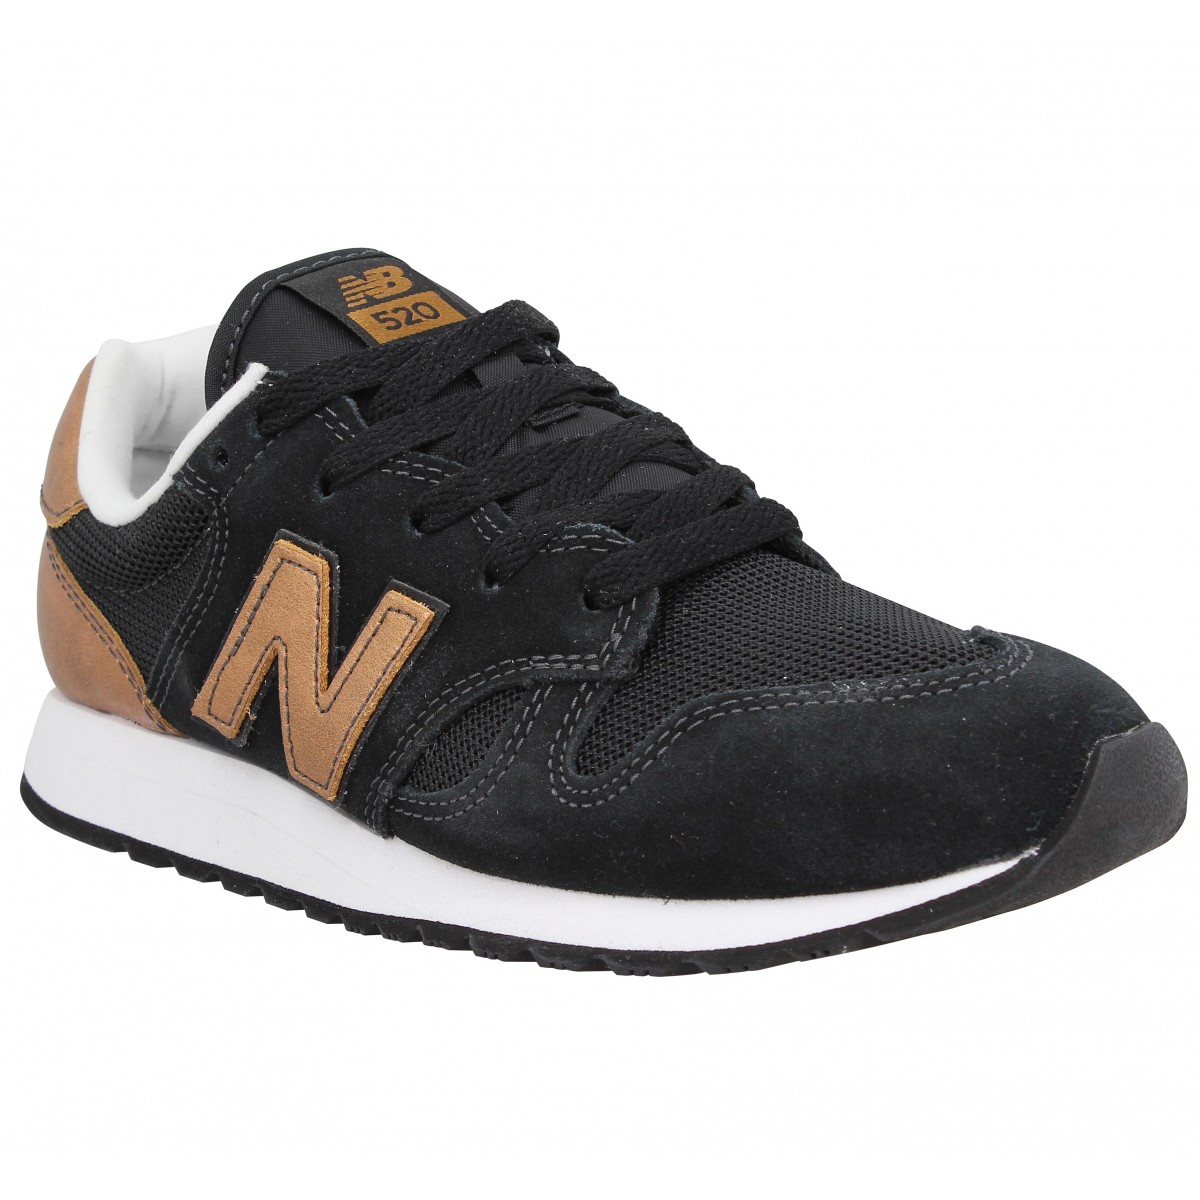 new balance 520 noir et or